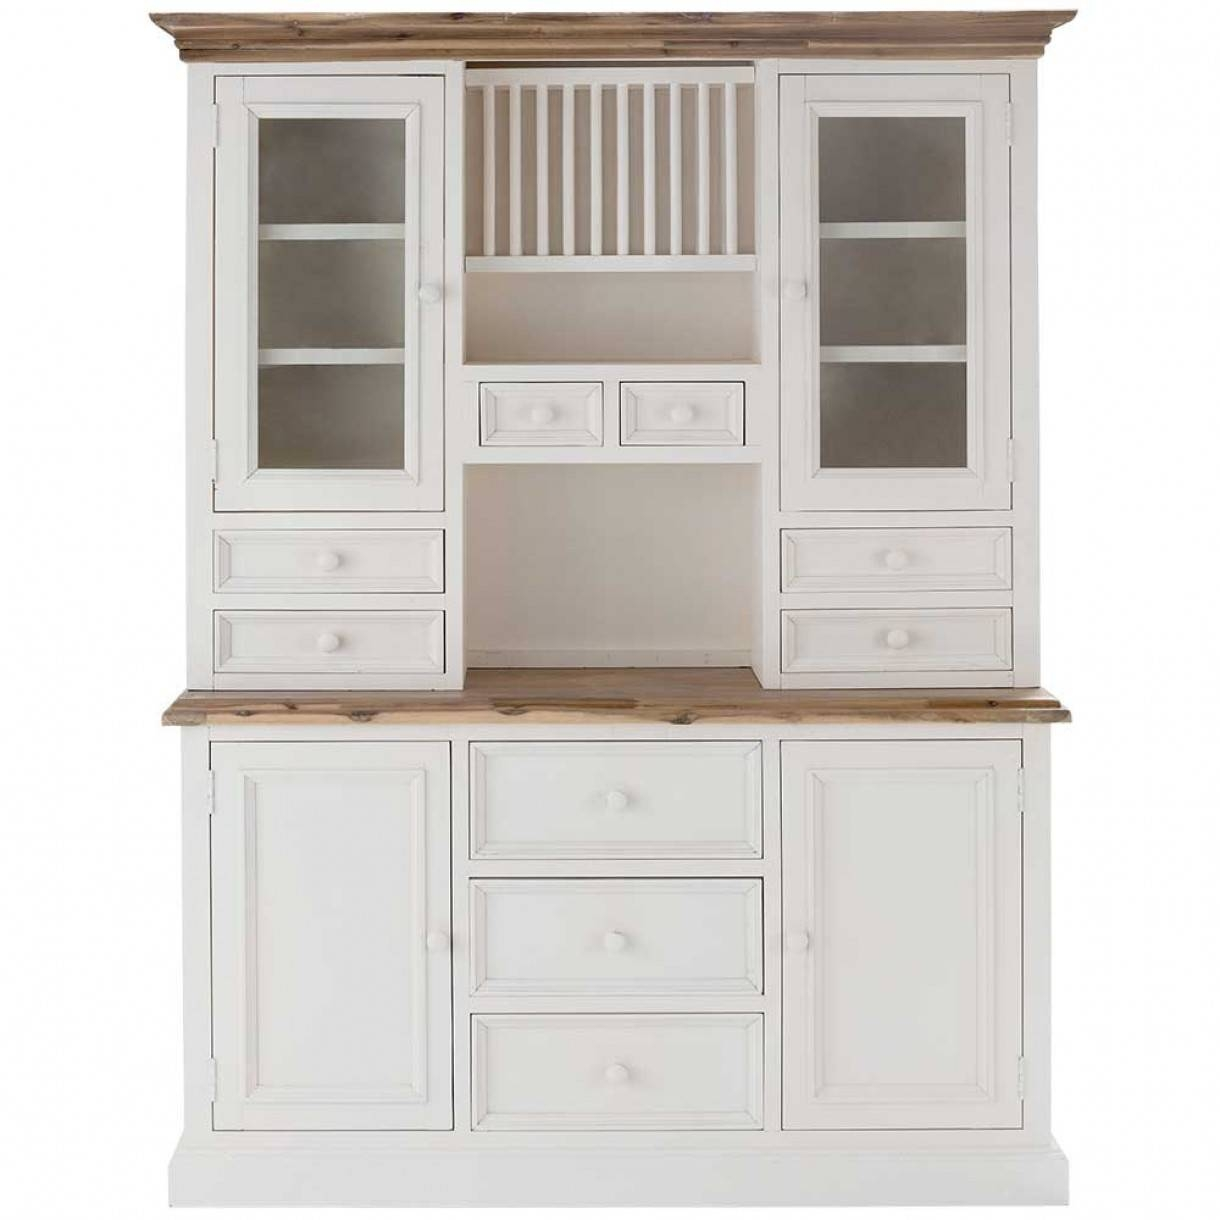 Sideboards. Inspiring Buffet And Hutch Furniture: Buffet-And-Hutch with regard to White Kitchen Sideboards (Image 19 of 30)